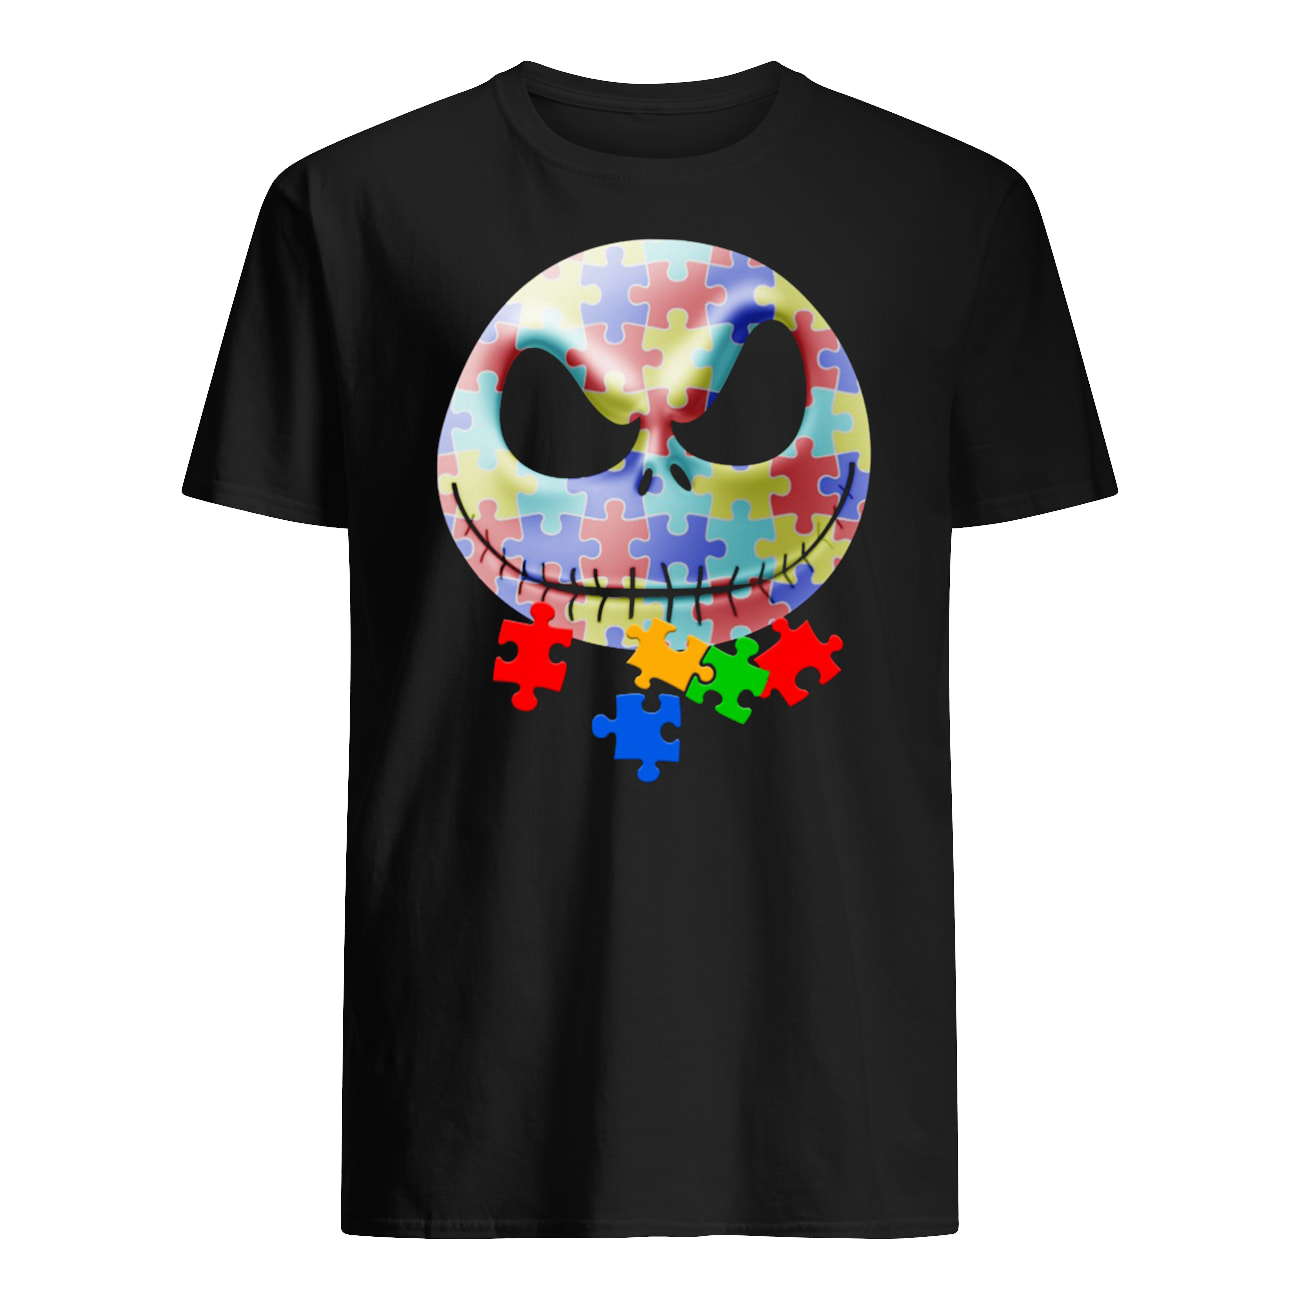 Jack skellington autism awareness mens shirt